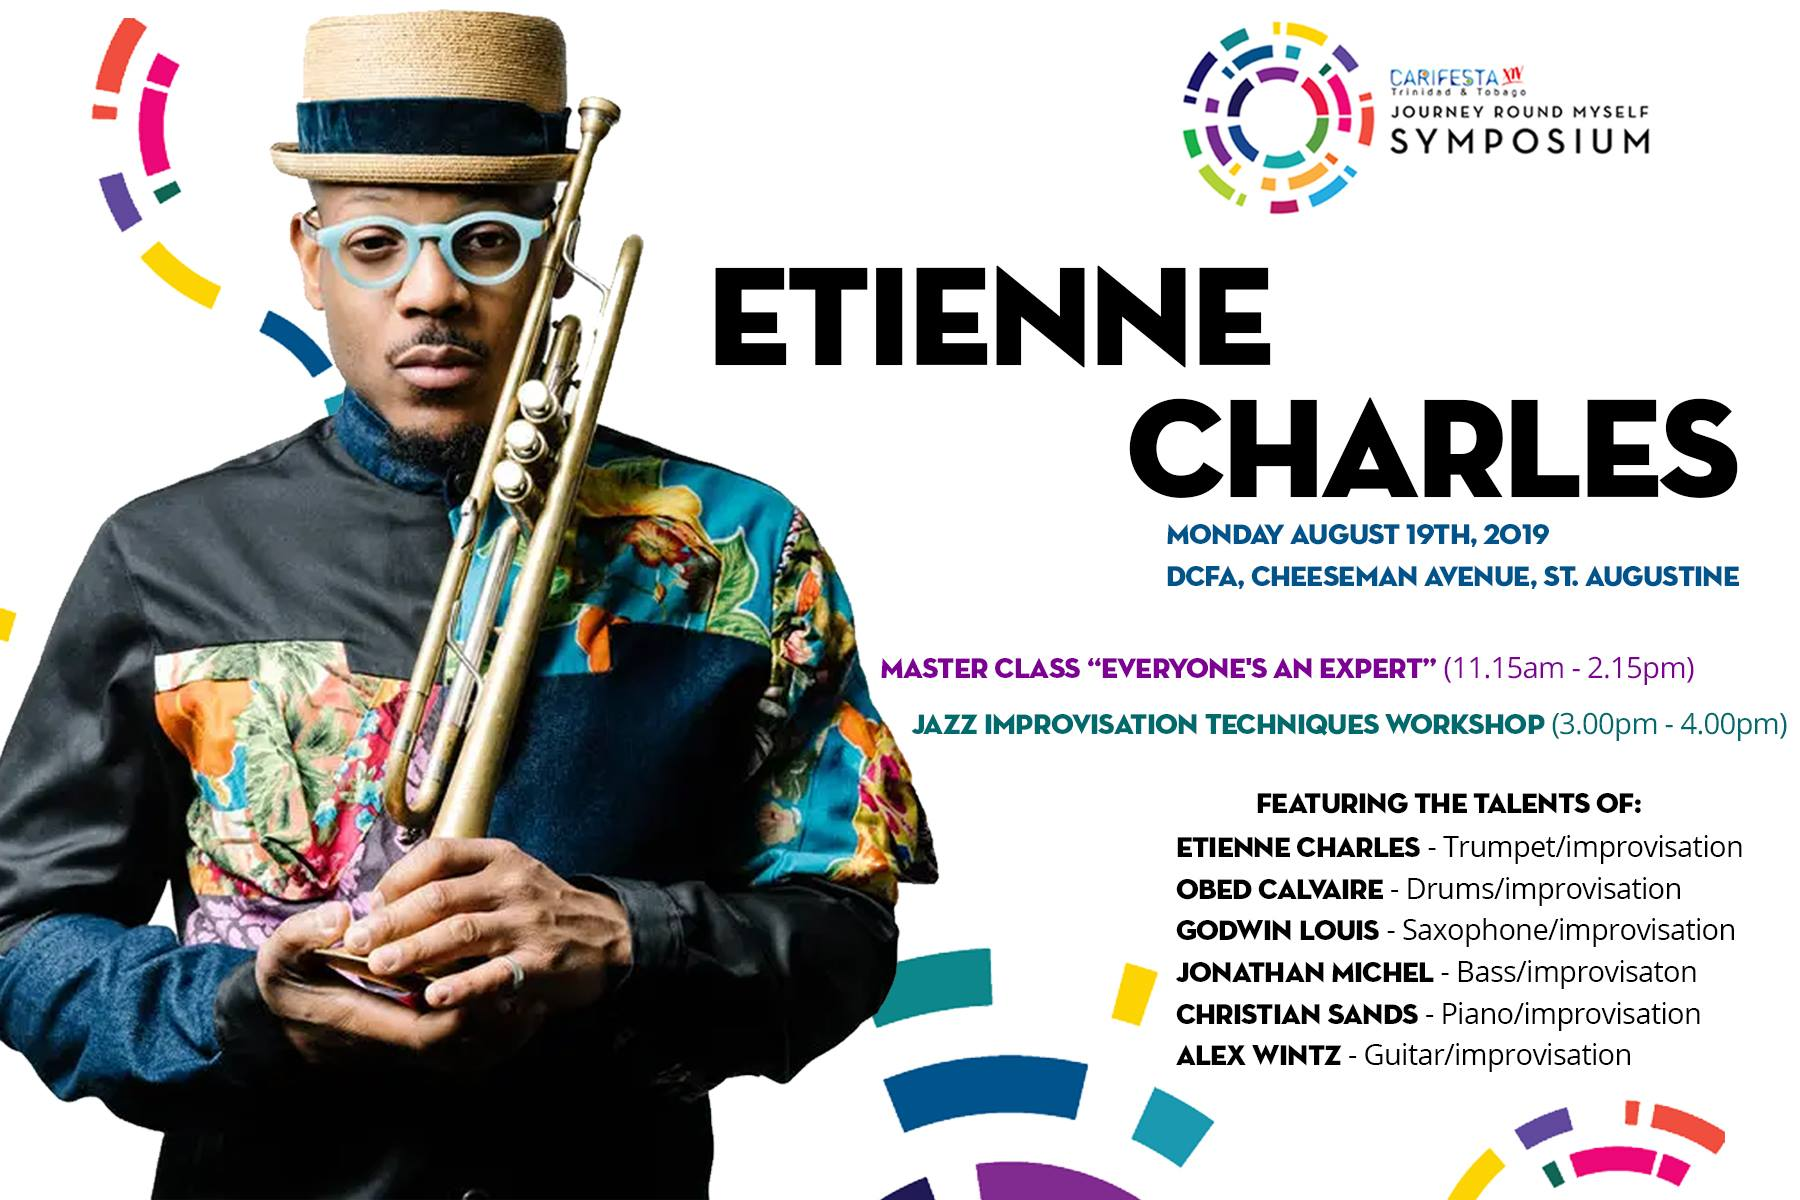 Etienne Charles Master Class Image